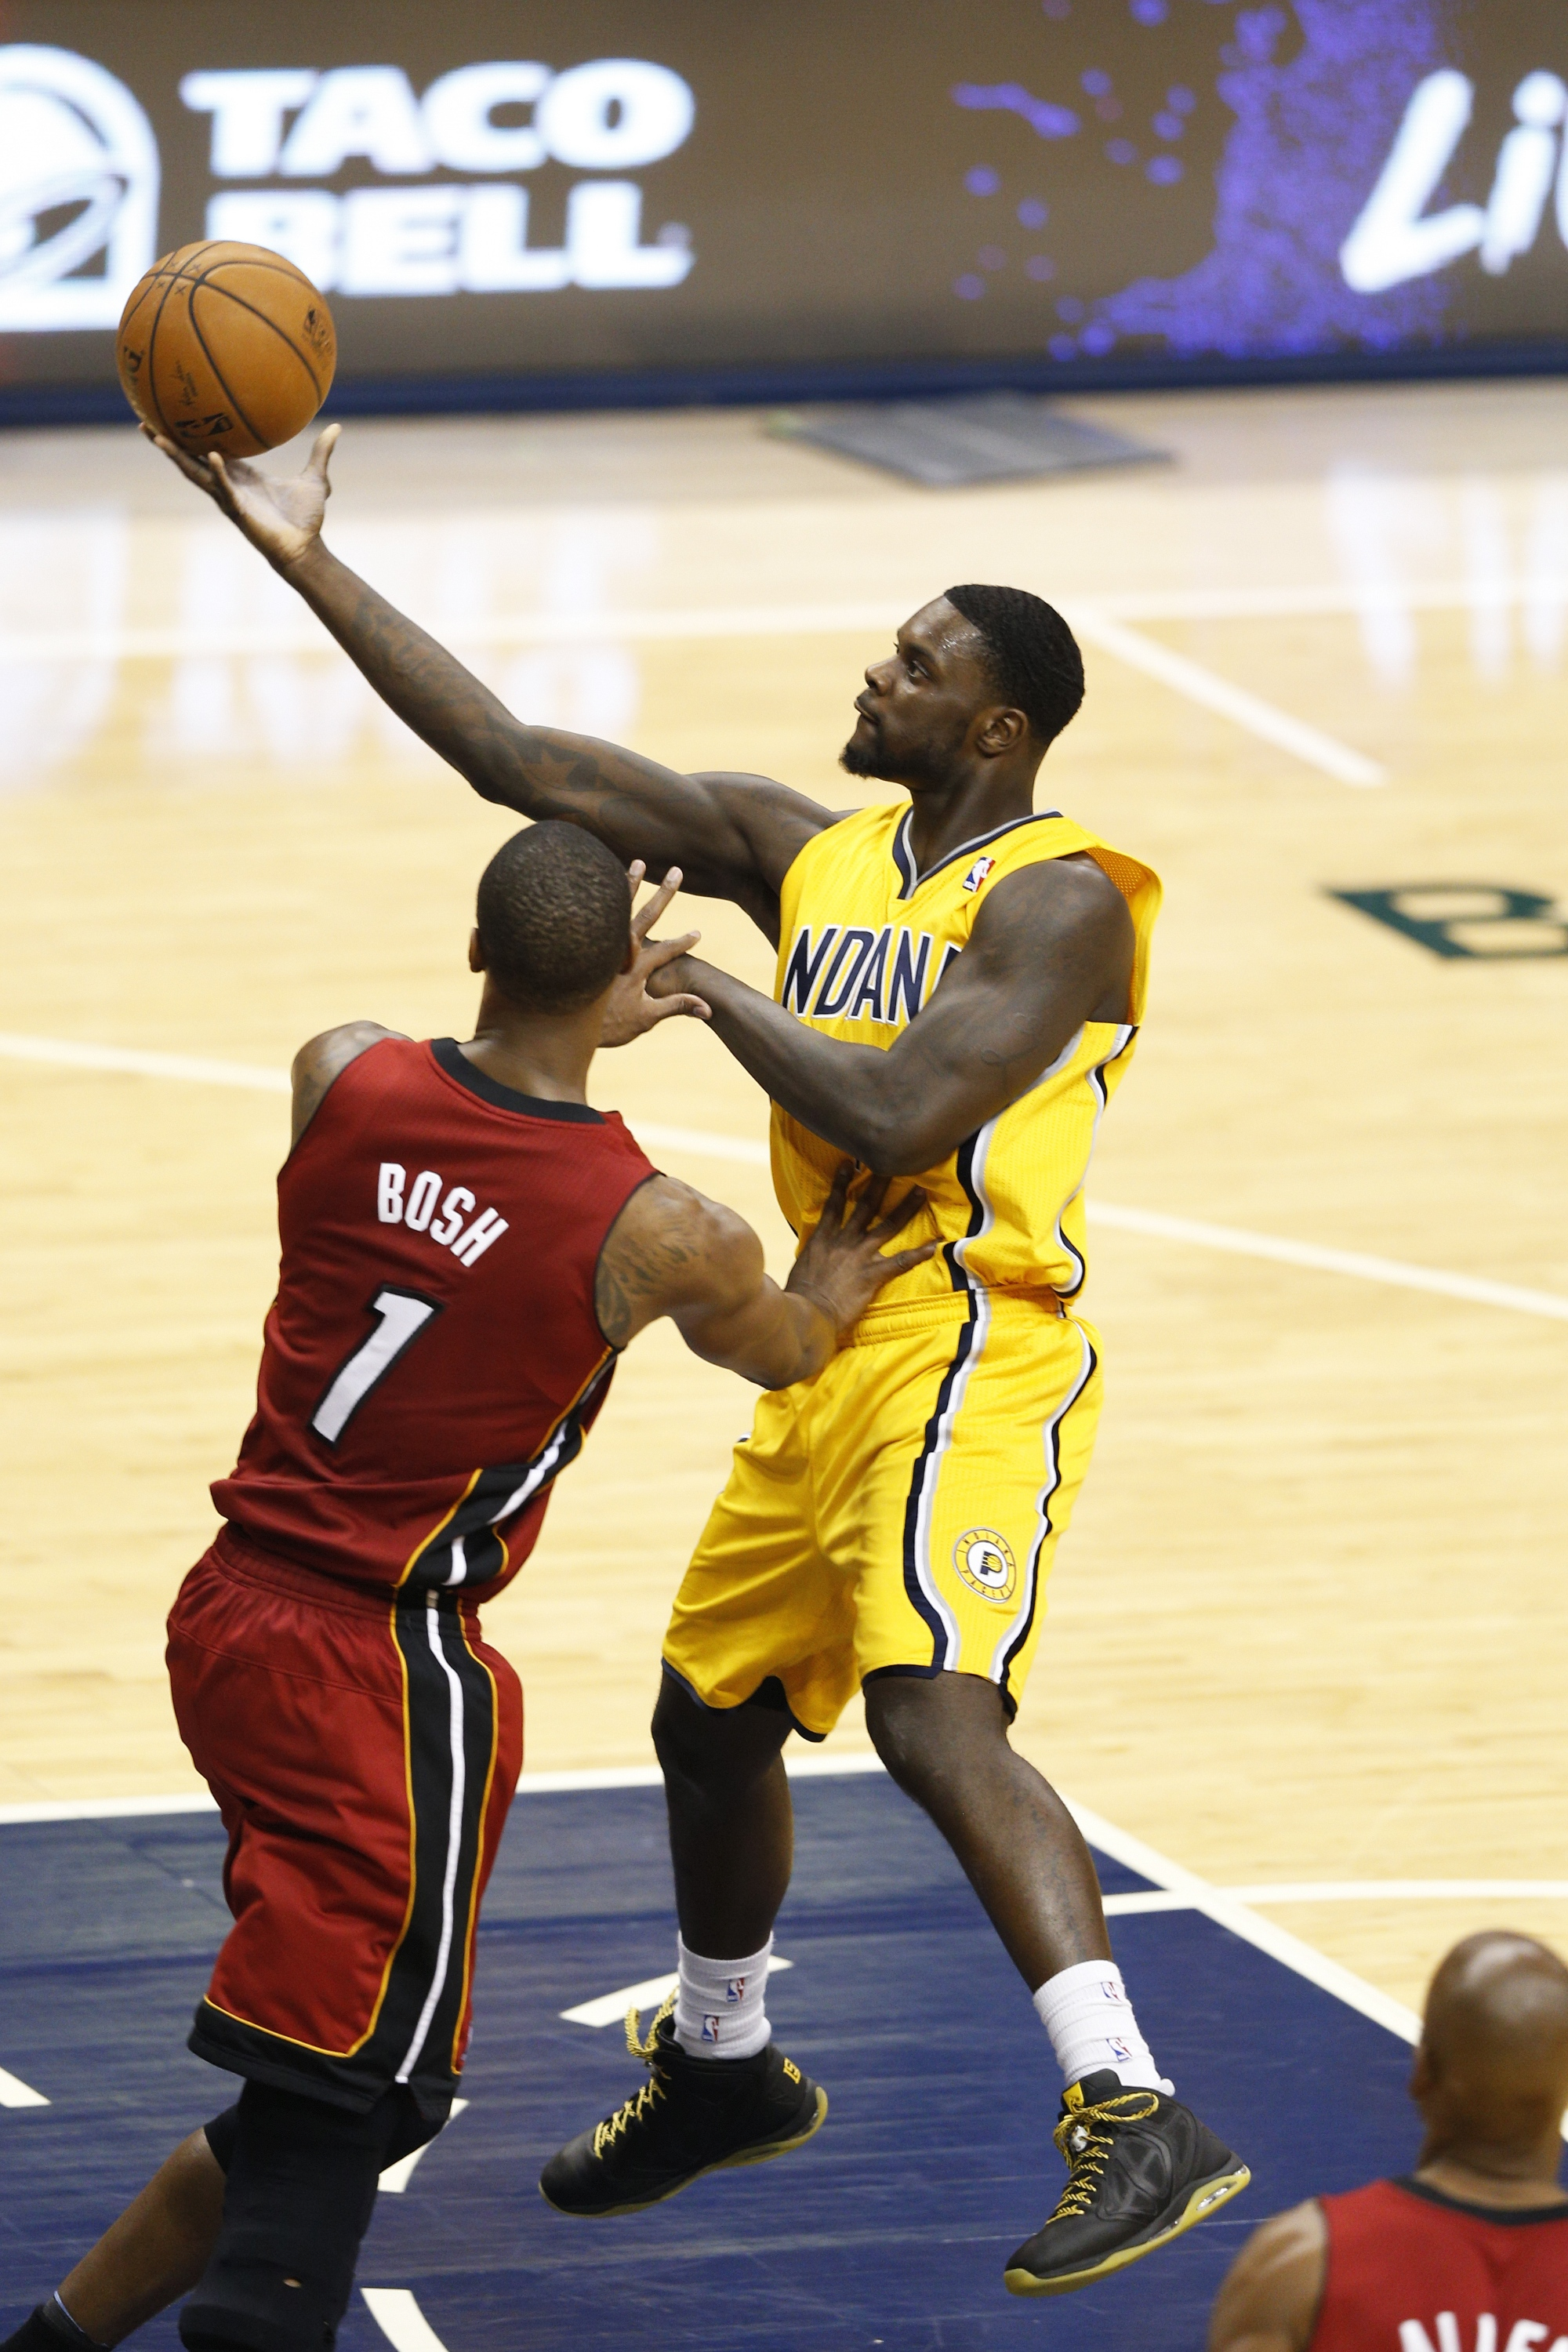 Indiana plays its best game in weeks, as the Pacers down the He…